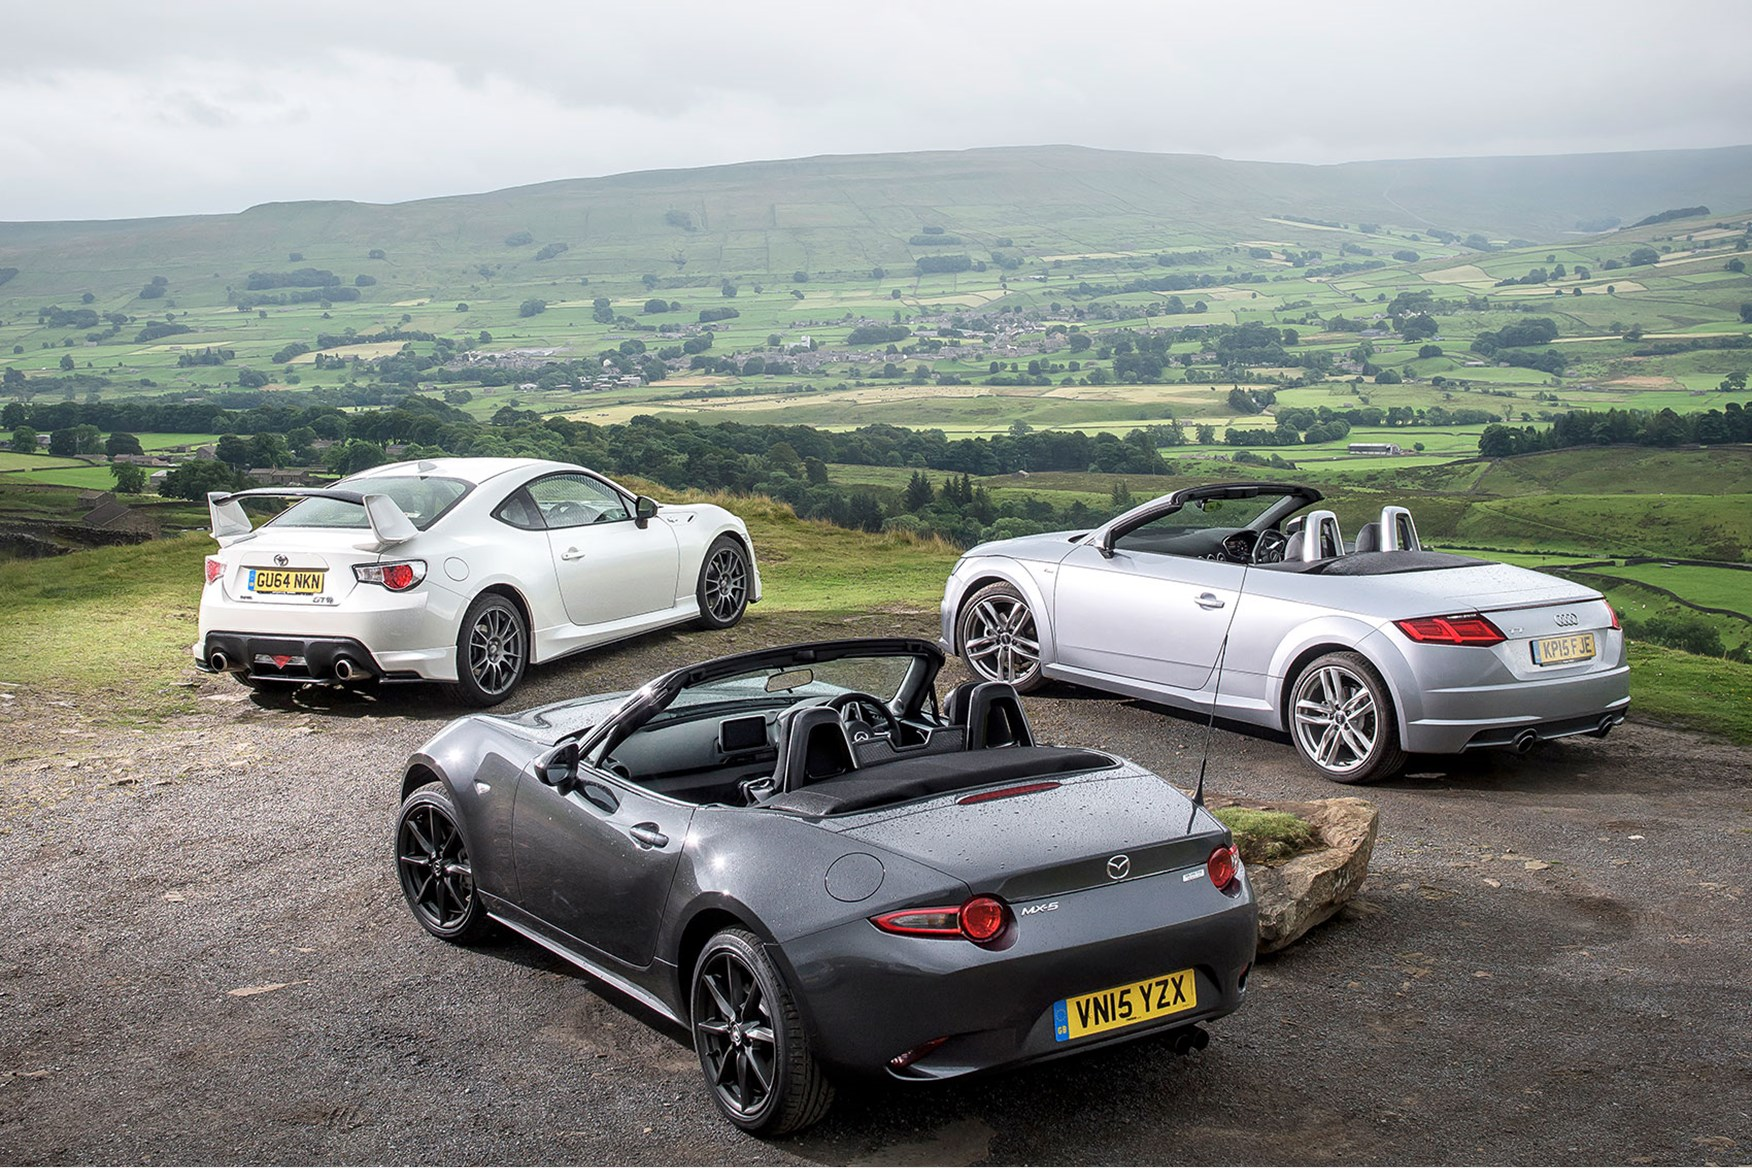 mazda mx 5 vs toyota gt86 vs audi tt triple test review  2016  by car magazine miata rf automatic vs manual Automatic Processing